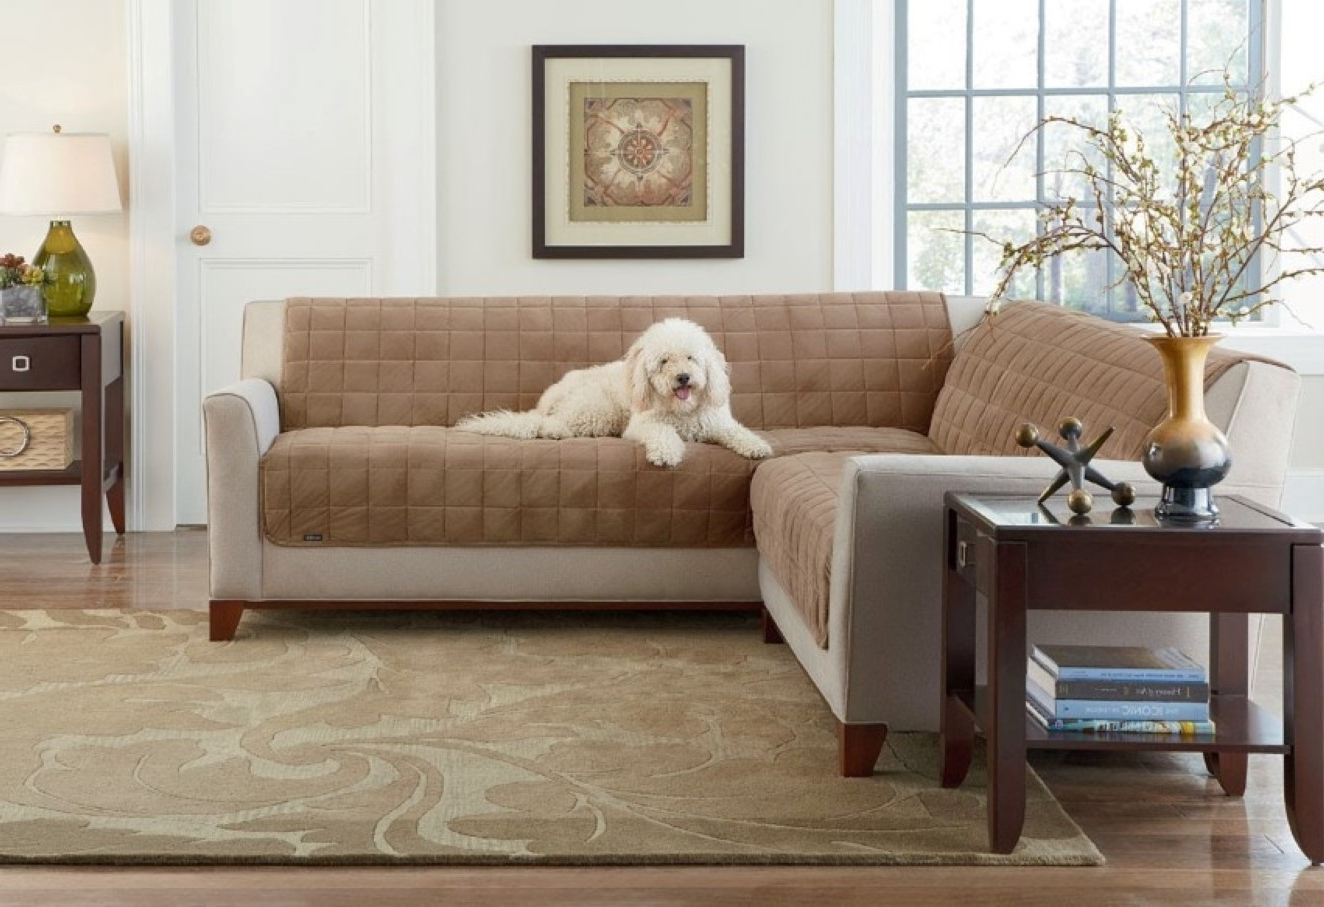 L Shape Sofa Covers — Cabinets, Beds, Sofas And Morecabinets, Beds Intended For Trendy Sectional Sofas With Covers (View 4 of 15)